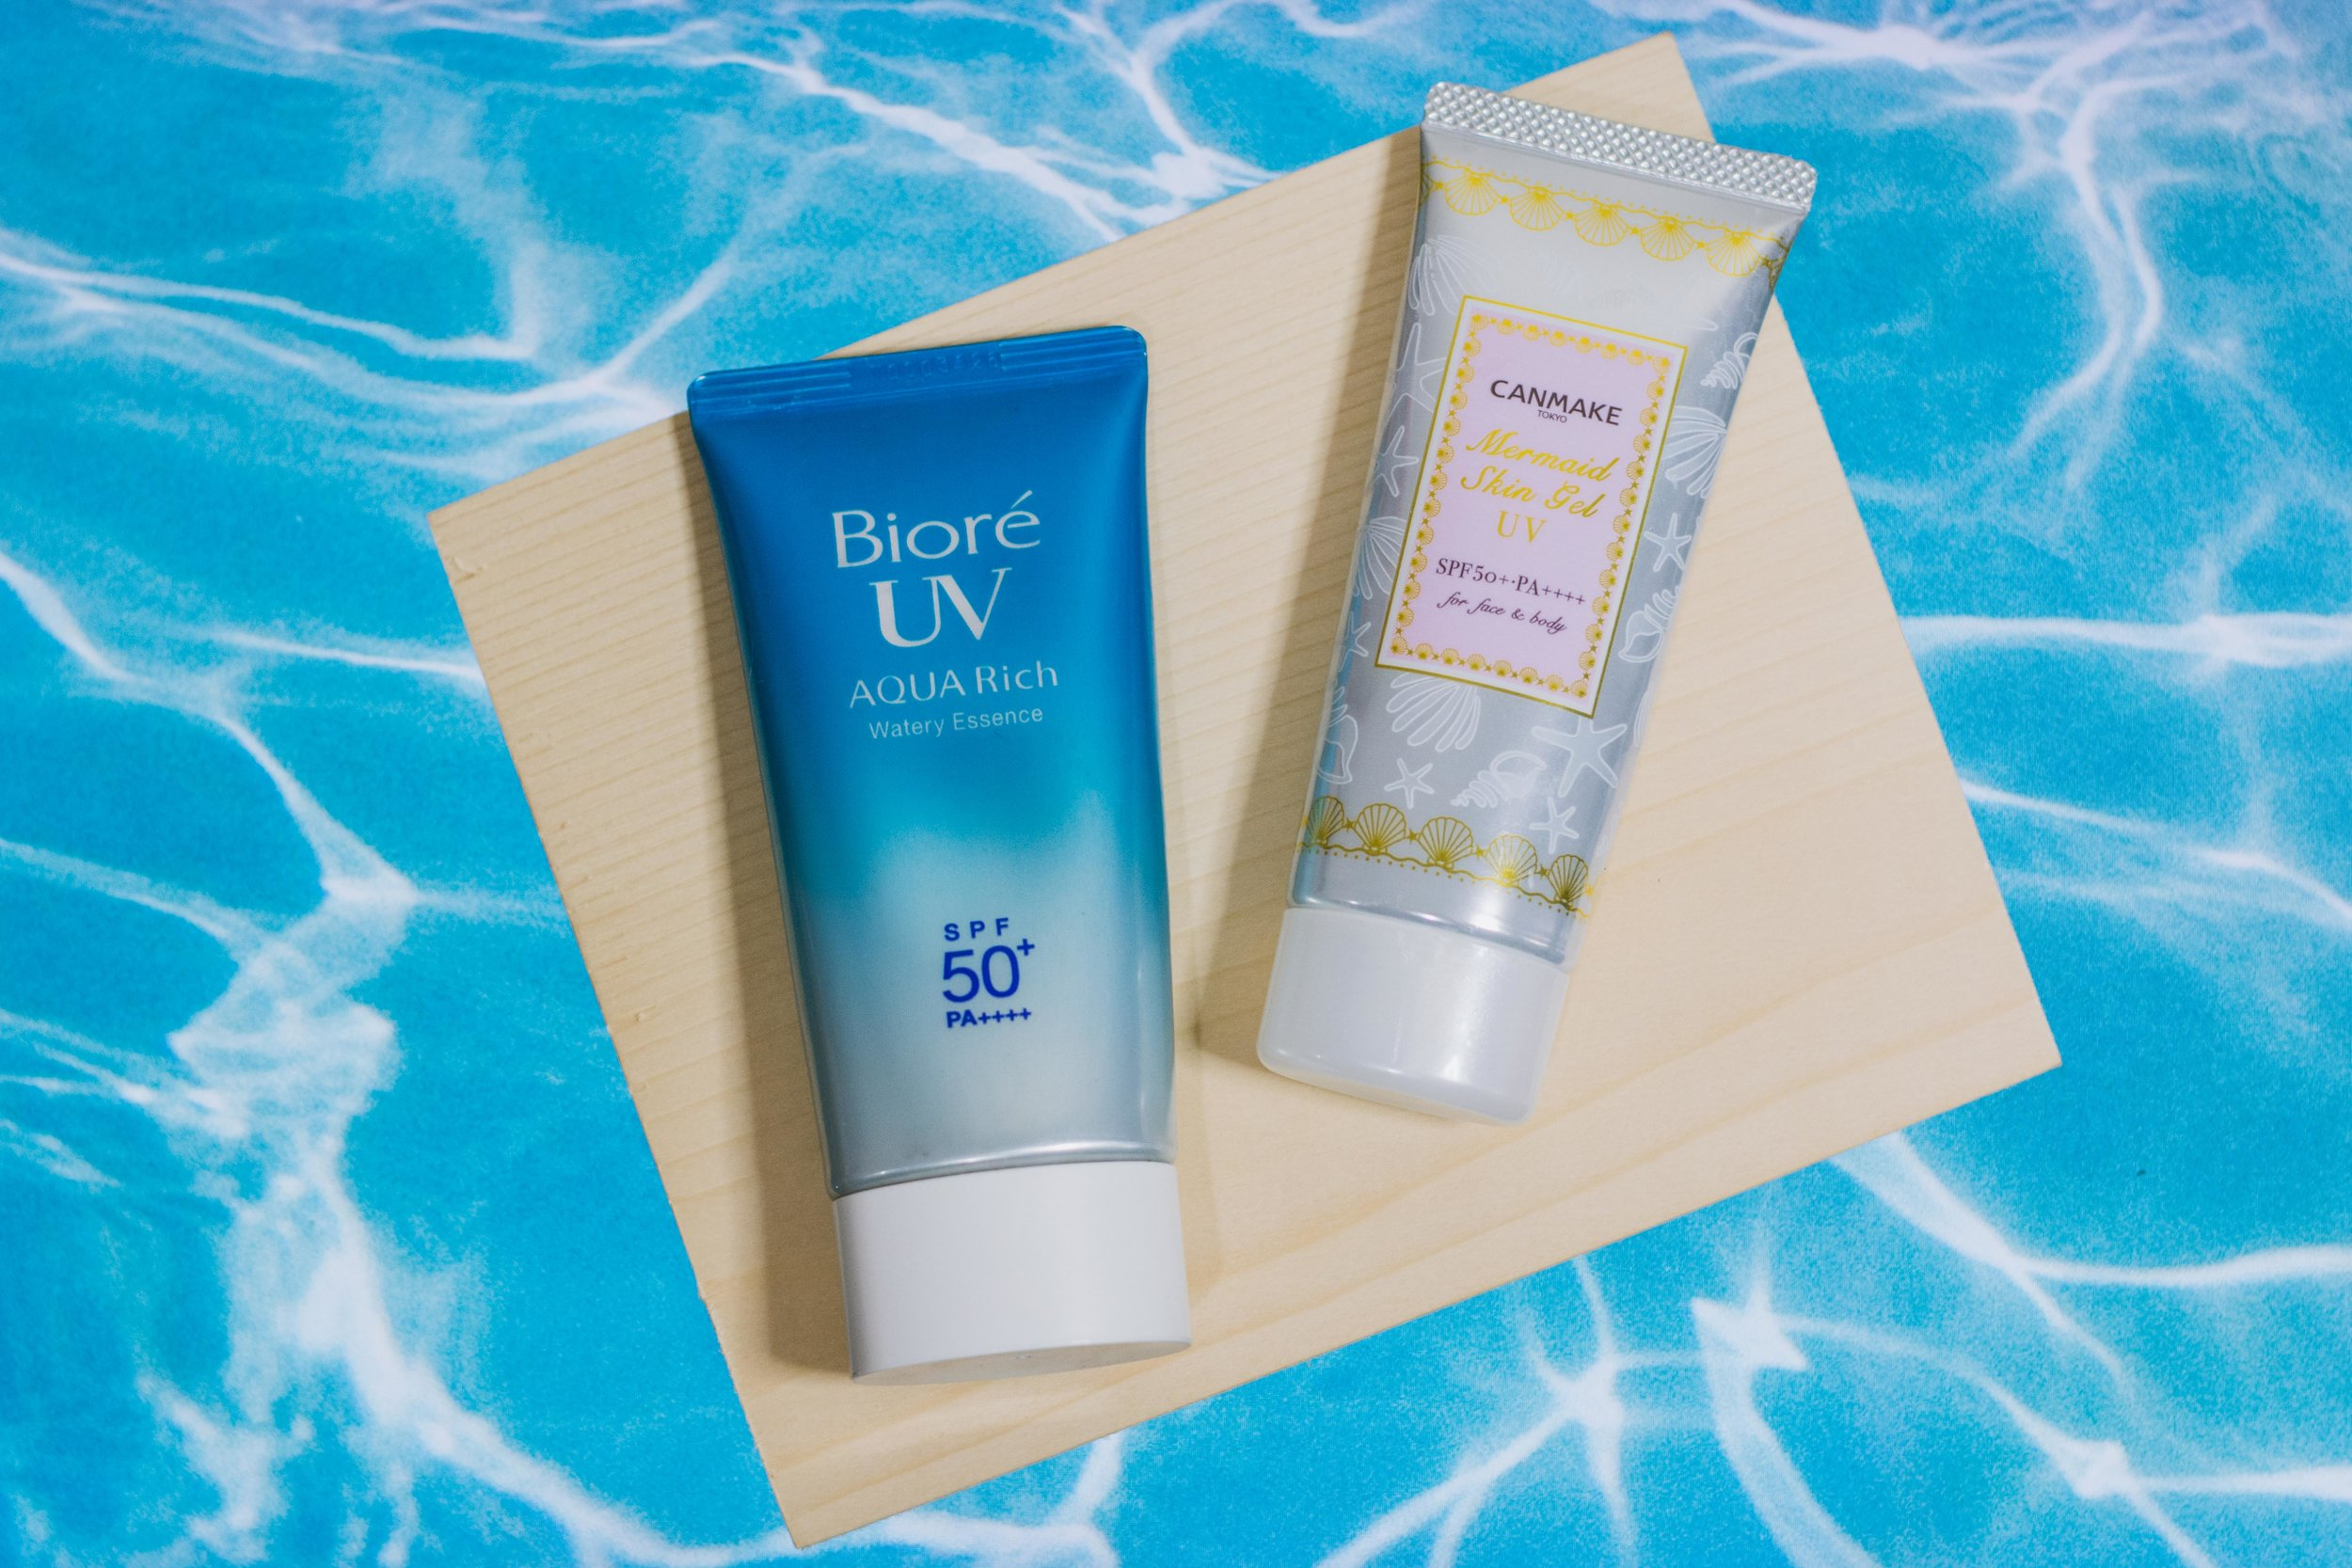 Japanese sunscreens: Biore UV Aqua Rich Watery Essence SPF50+ PA++++ and Canmake Mermaid Skin Gel UV SPF50+ PA++++